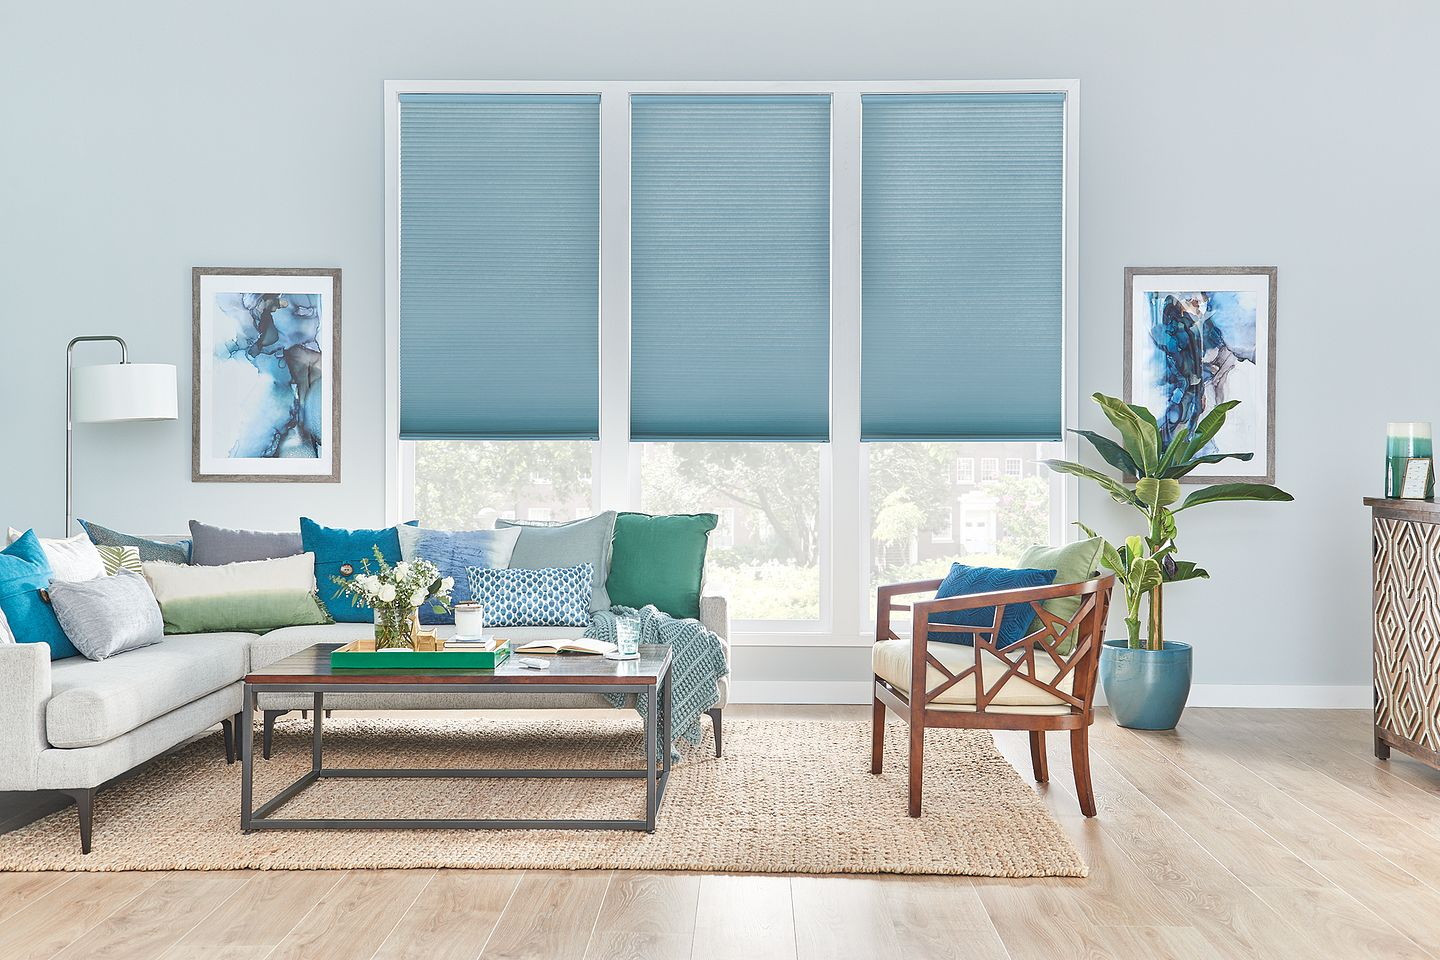 Bali Cellular Shades with Motorized Lift